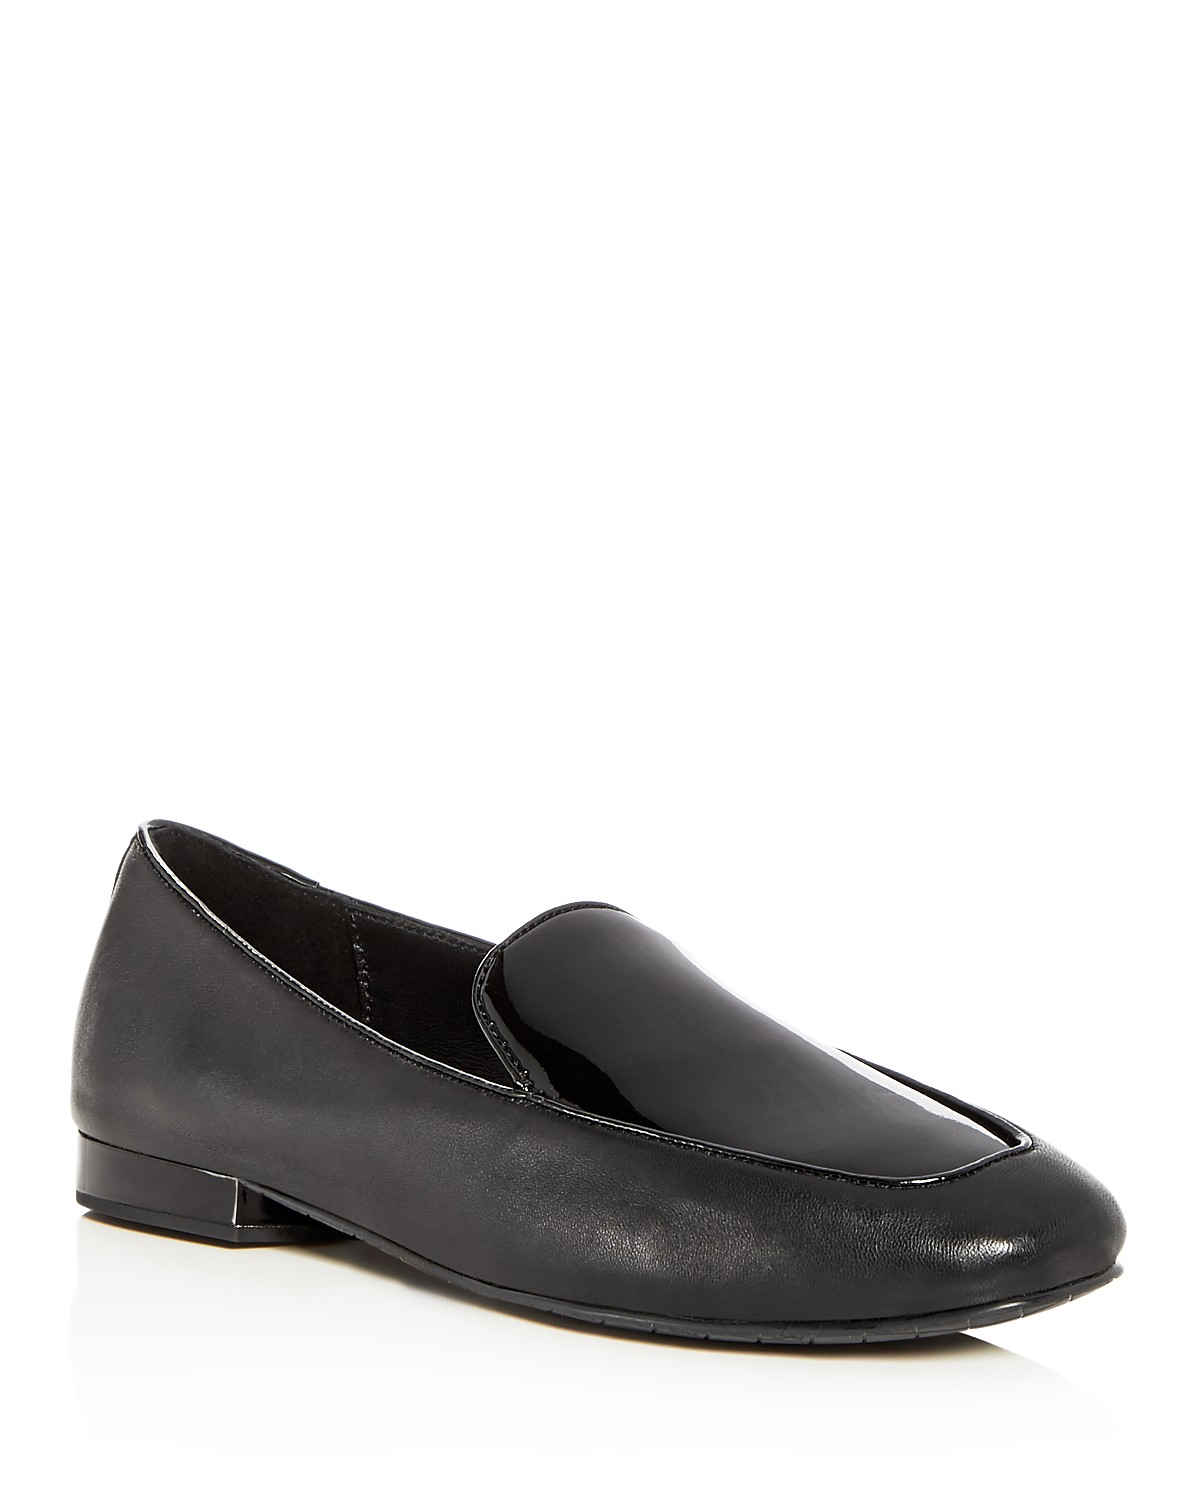 Donald Pliner Women's Honey Leather & Patent Leather Loafers Zi0yV1UK